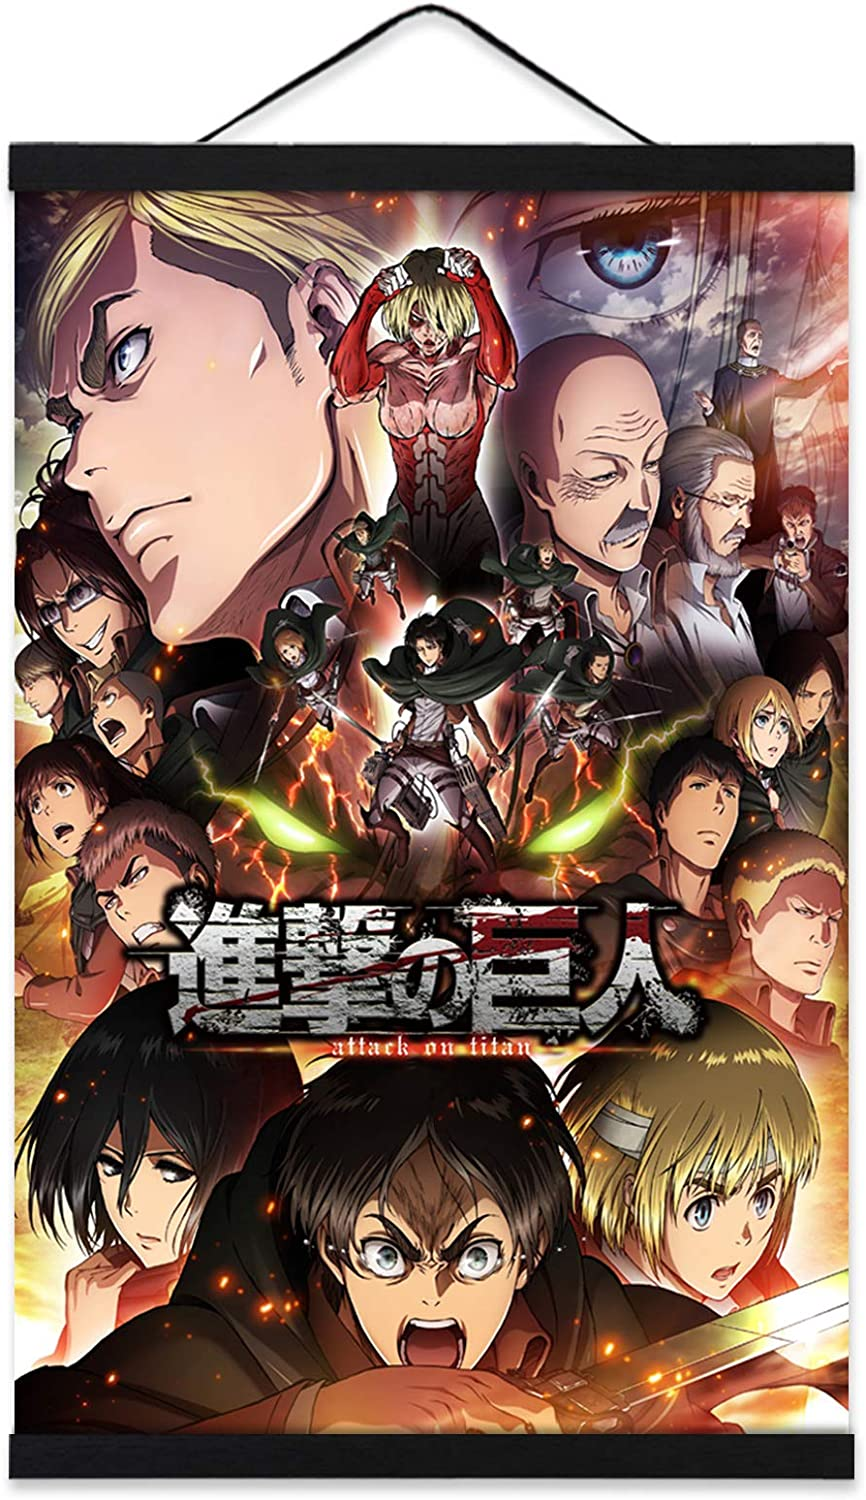 YIU Attack On Titan Wall Scroll 16x24in Poster Shingeki No Kyojin Anime Pictures for Bedroom Decor with Wooden Magnet Hanger